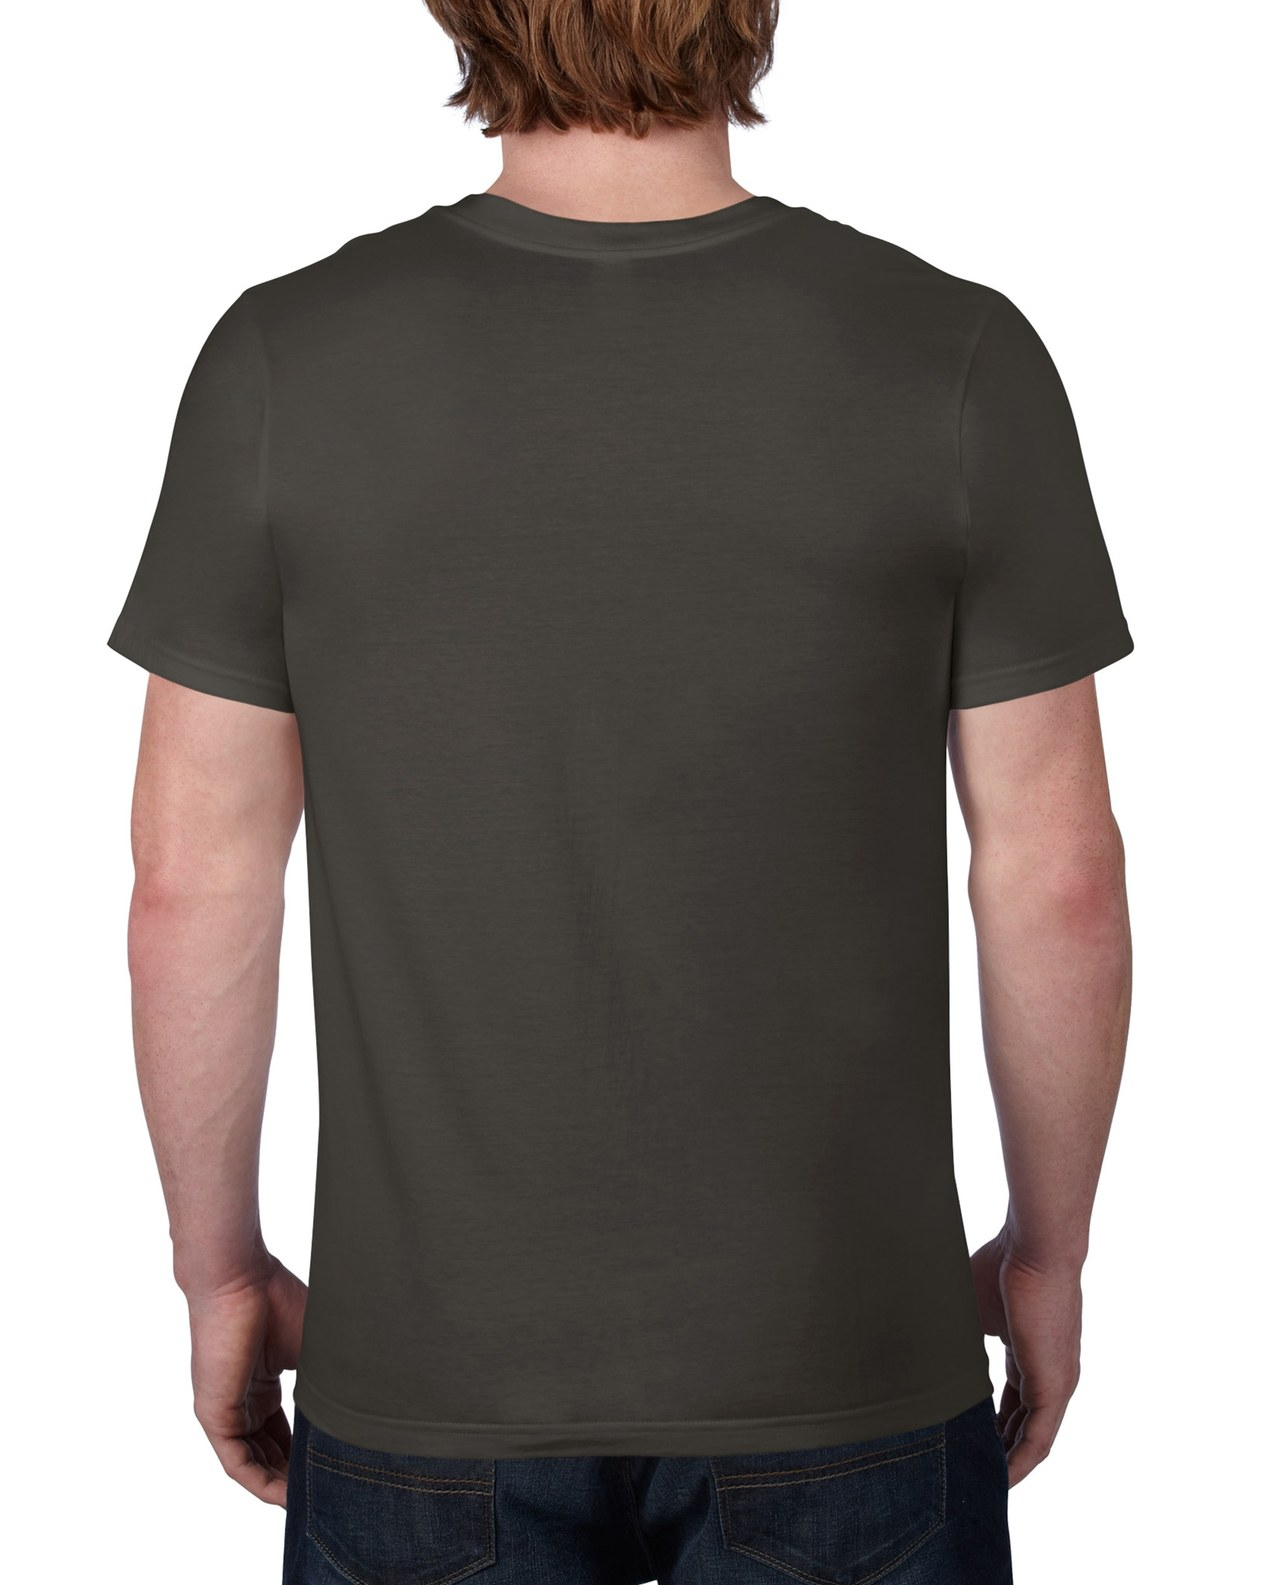 7148496f815 982. Lightweight. Adult Lightweight V-Neck Tee. Compare. Add to Favorites.  Fit